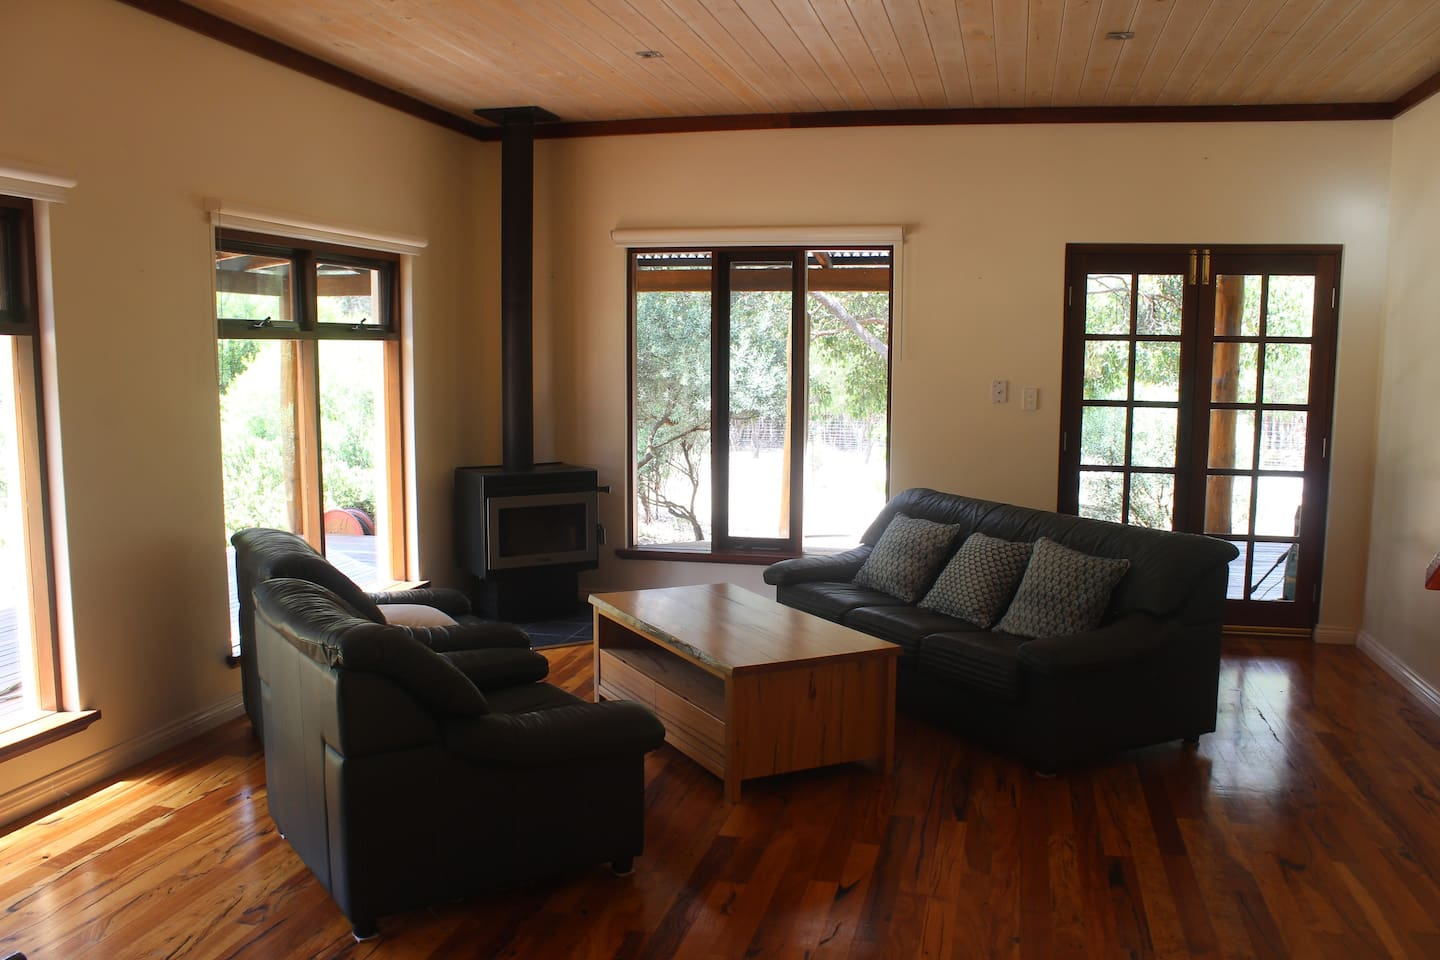 Downstairs living area